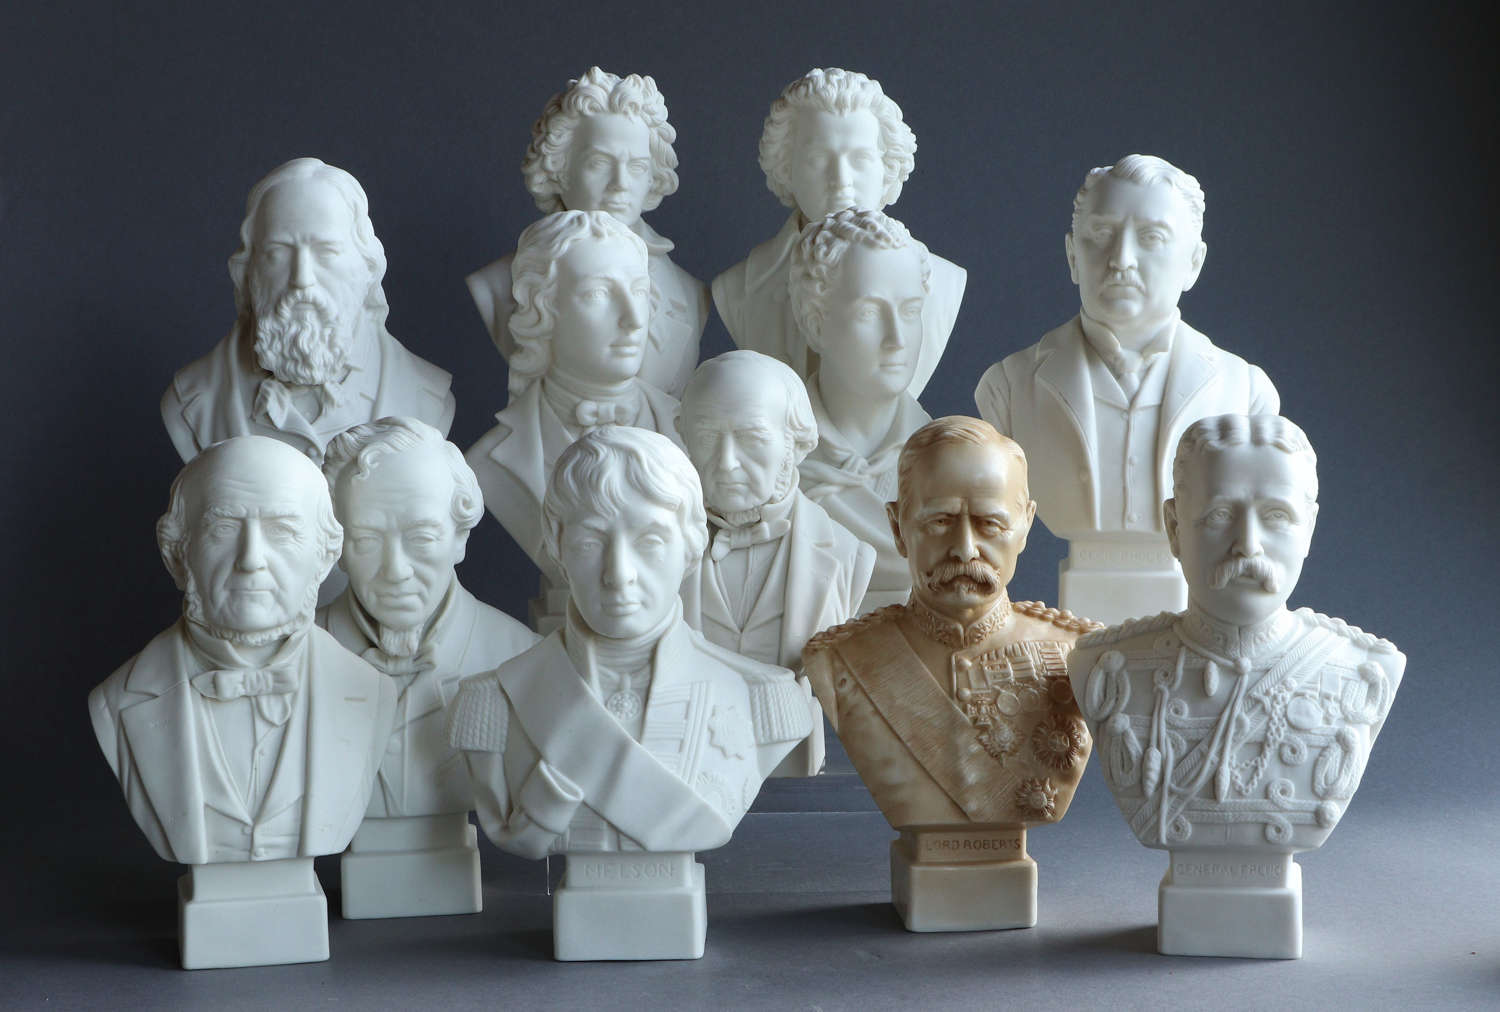 A collection of small antique Parian busts